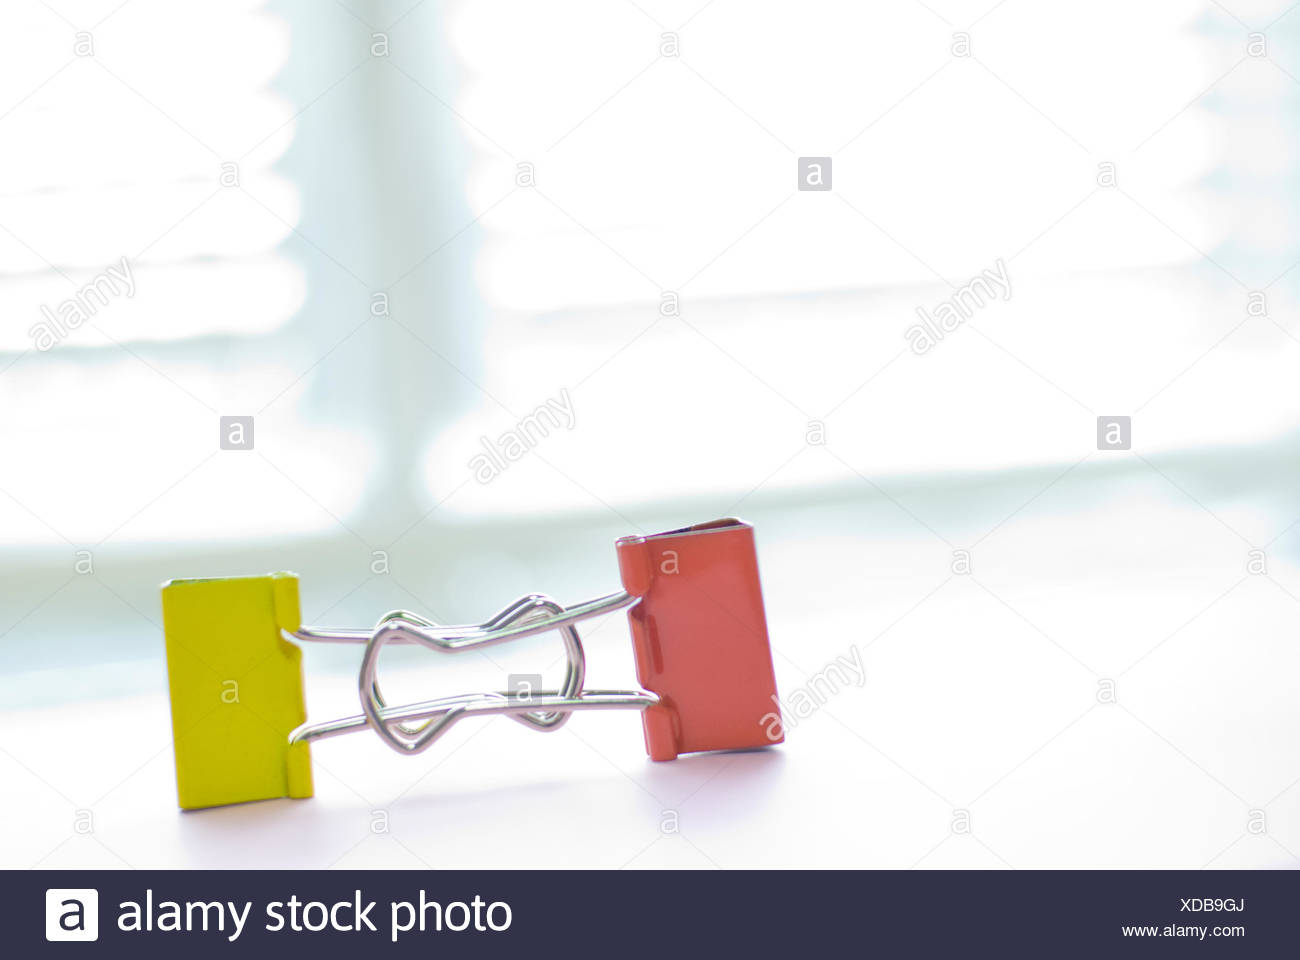 Colorful binder clip - Stock Image